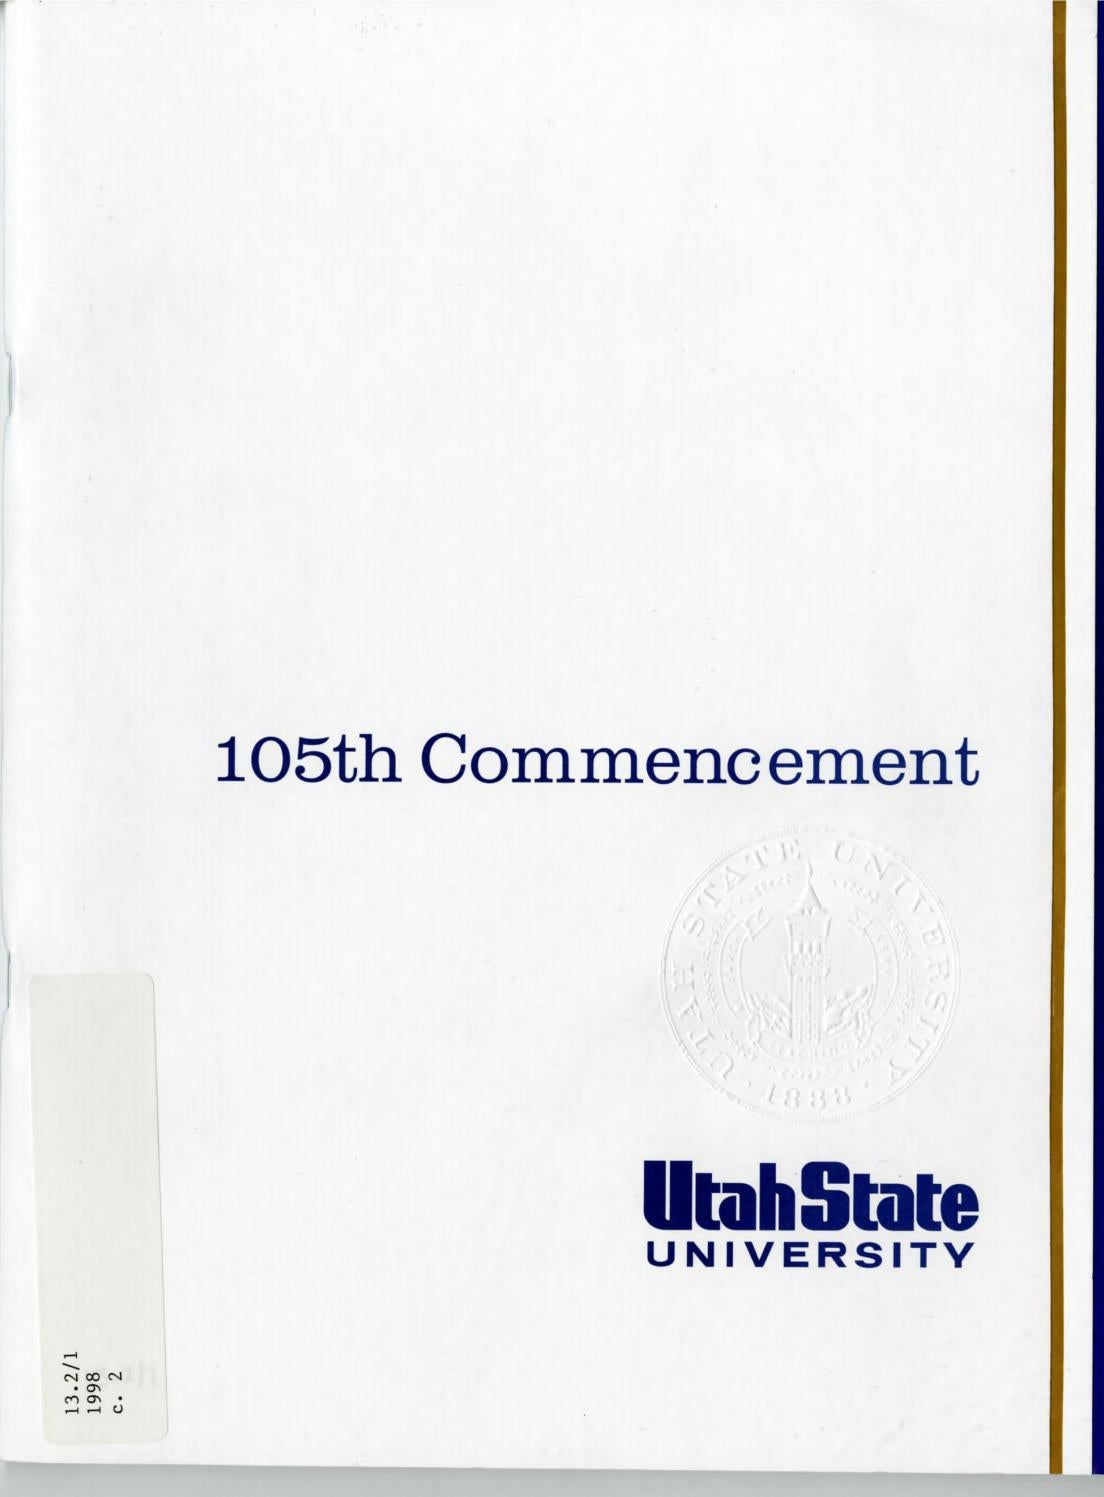 Utah State University Commencement 1998 by USU Digital Commons - issuu